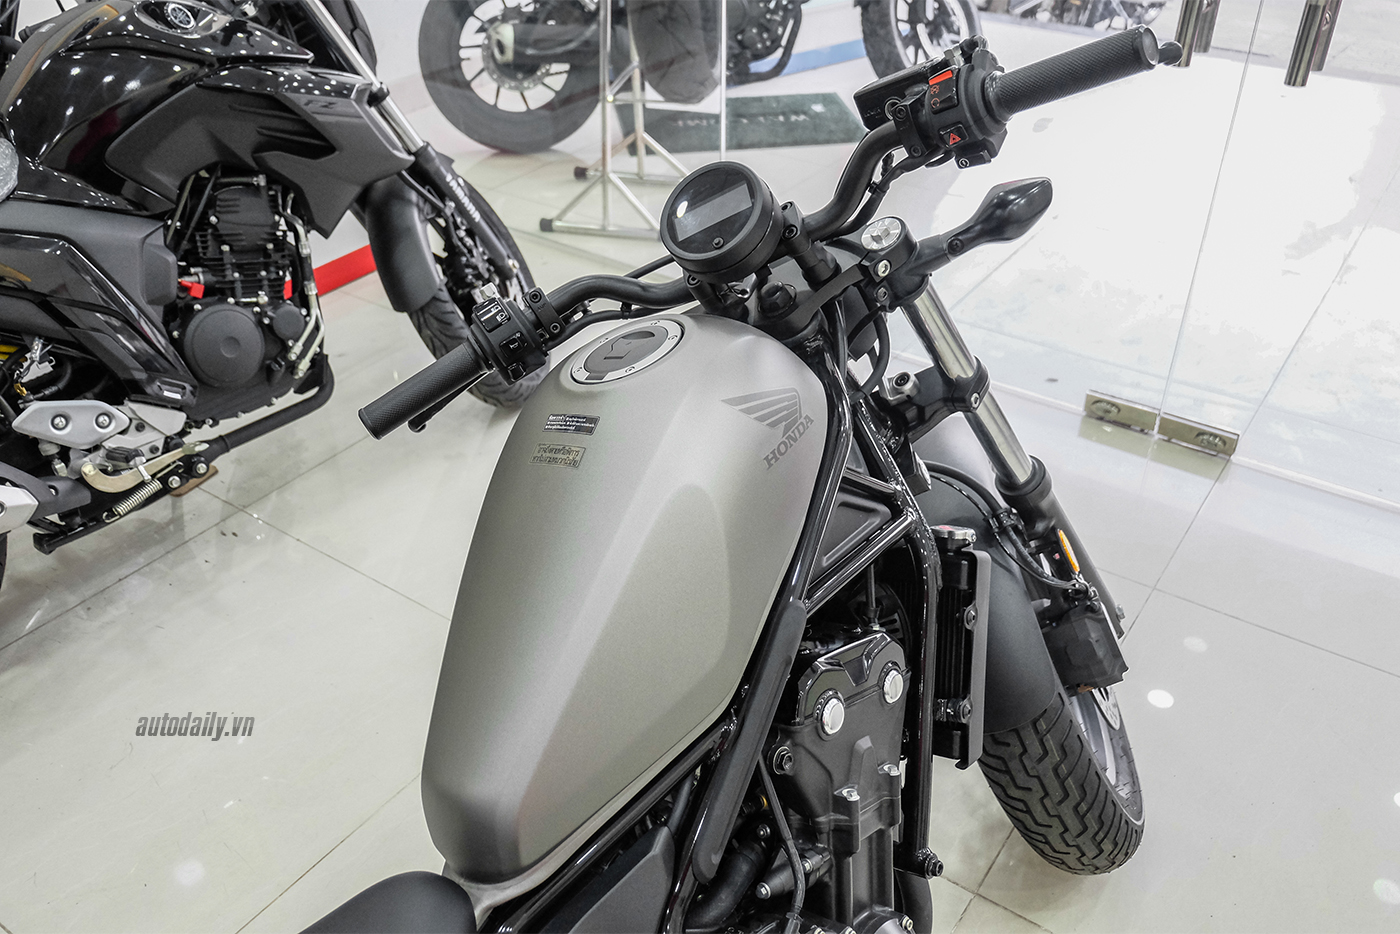 honda-rebel-500-abs-2017-11.jpg